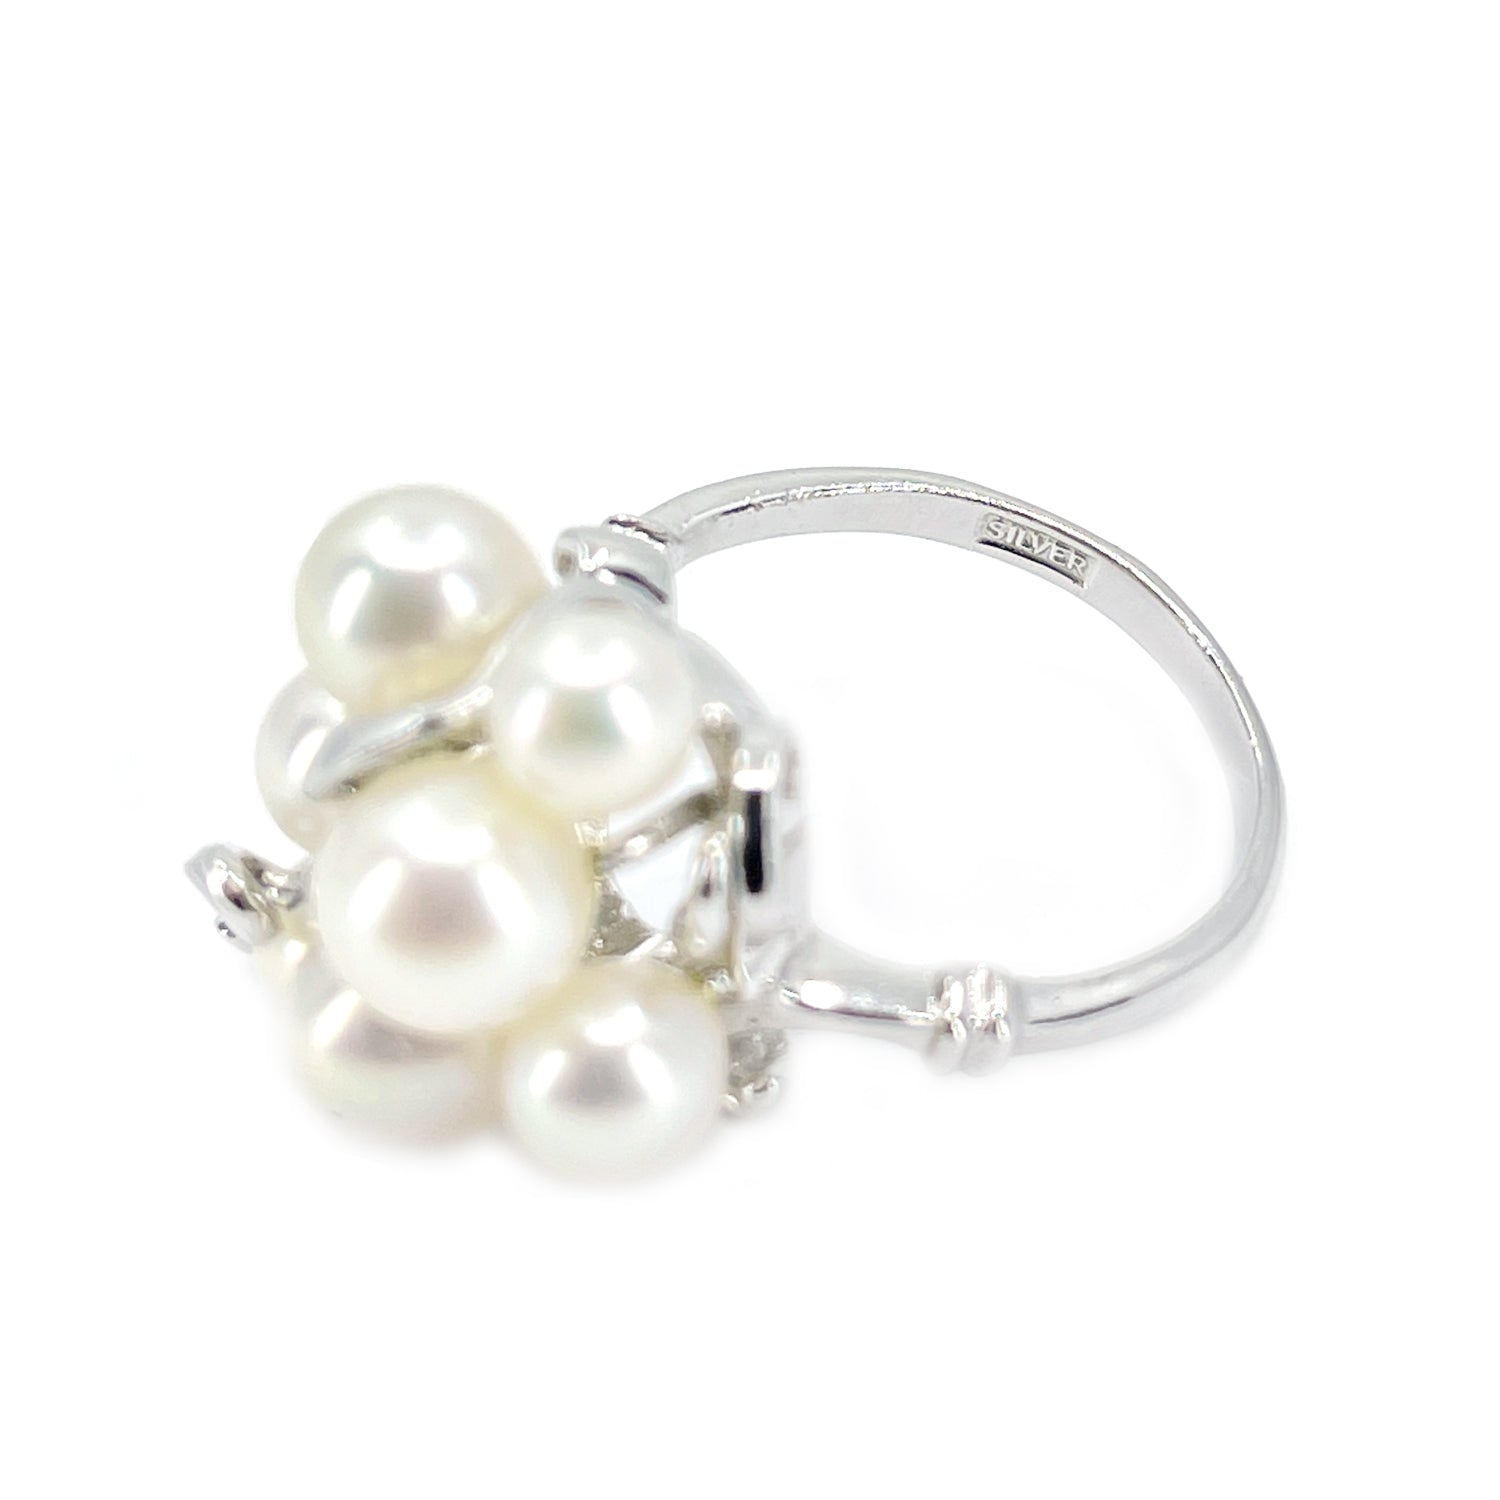 Cluster Mid Century Japanese Saltwater Akoya Cultured Pearl Ring- Sterling Silver Sz 5 1/2